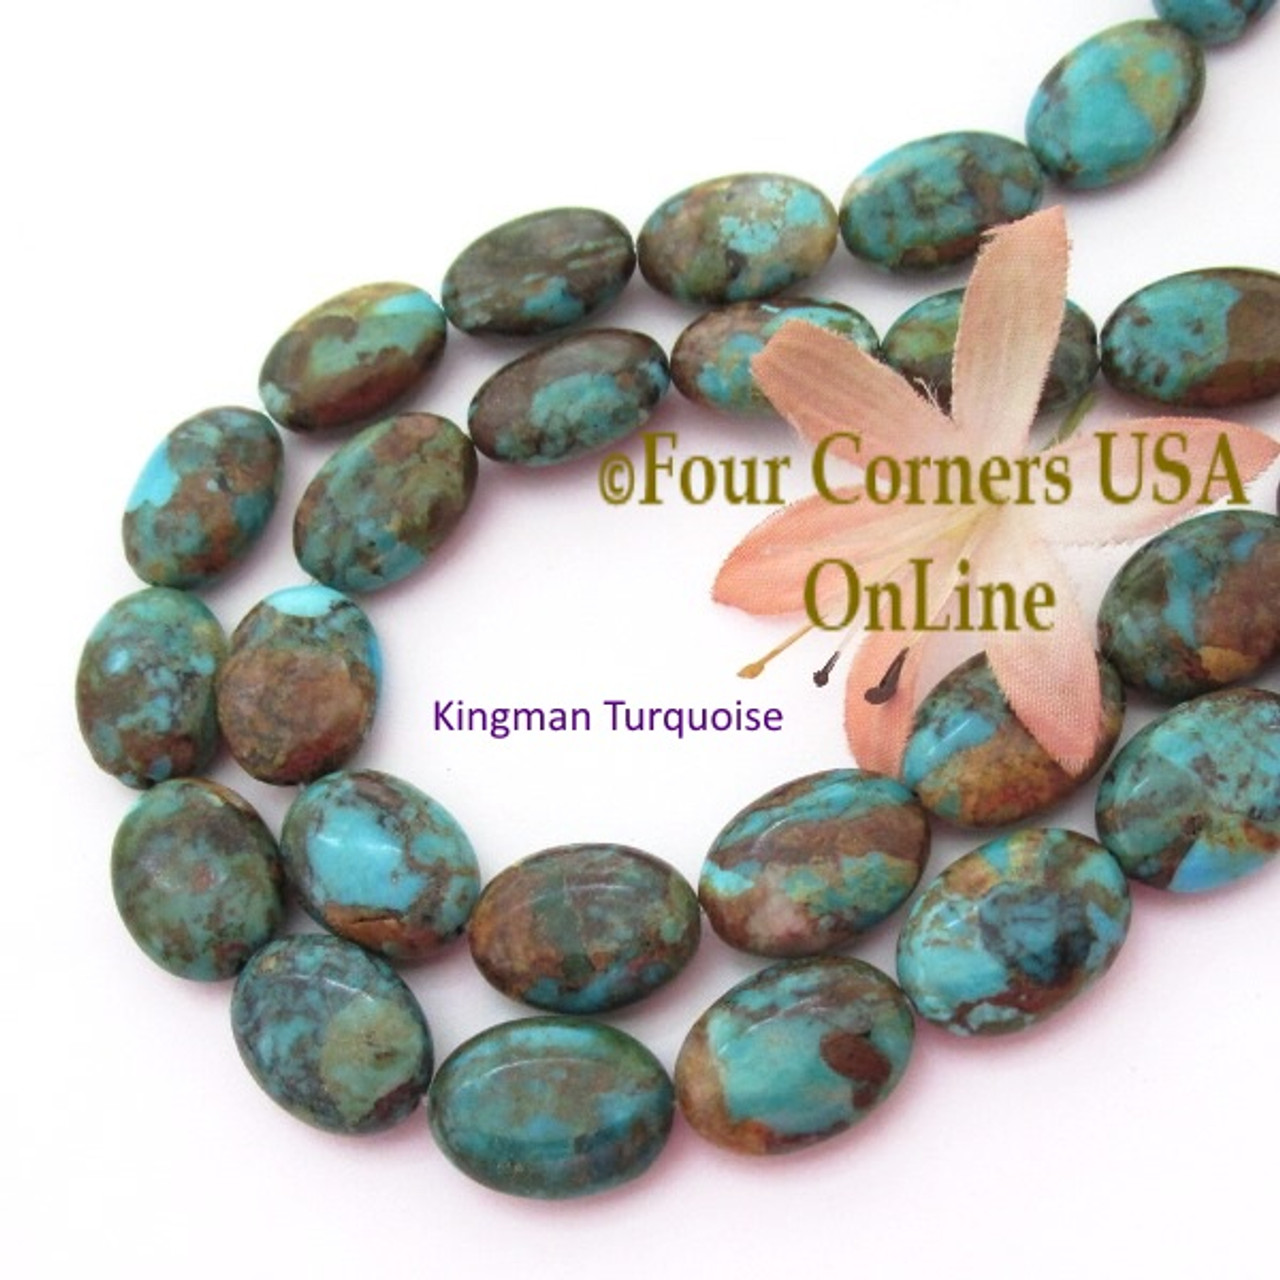 pagespeed ghqe product rhinestones category wholesale archives online blue round turquoise magnesite ic b design beads usa